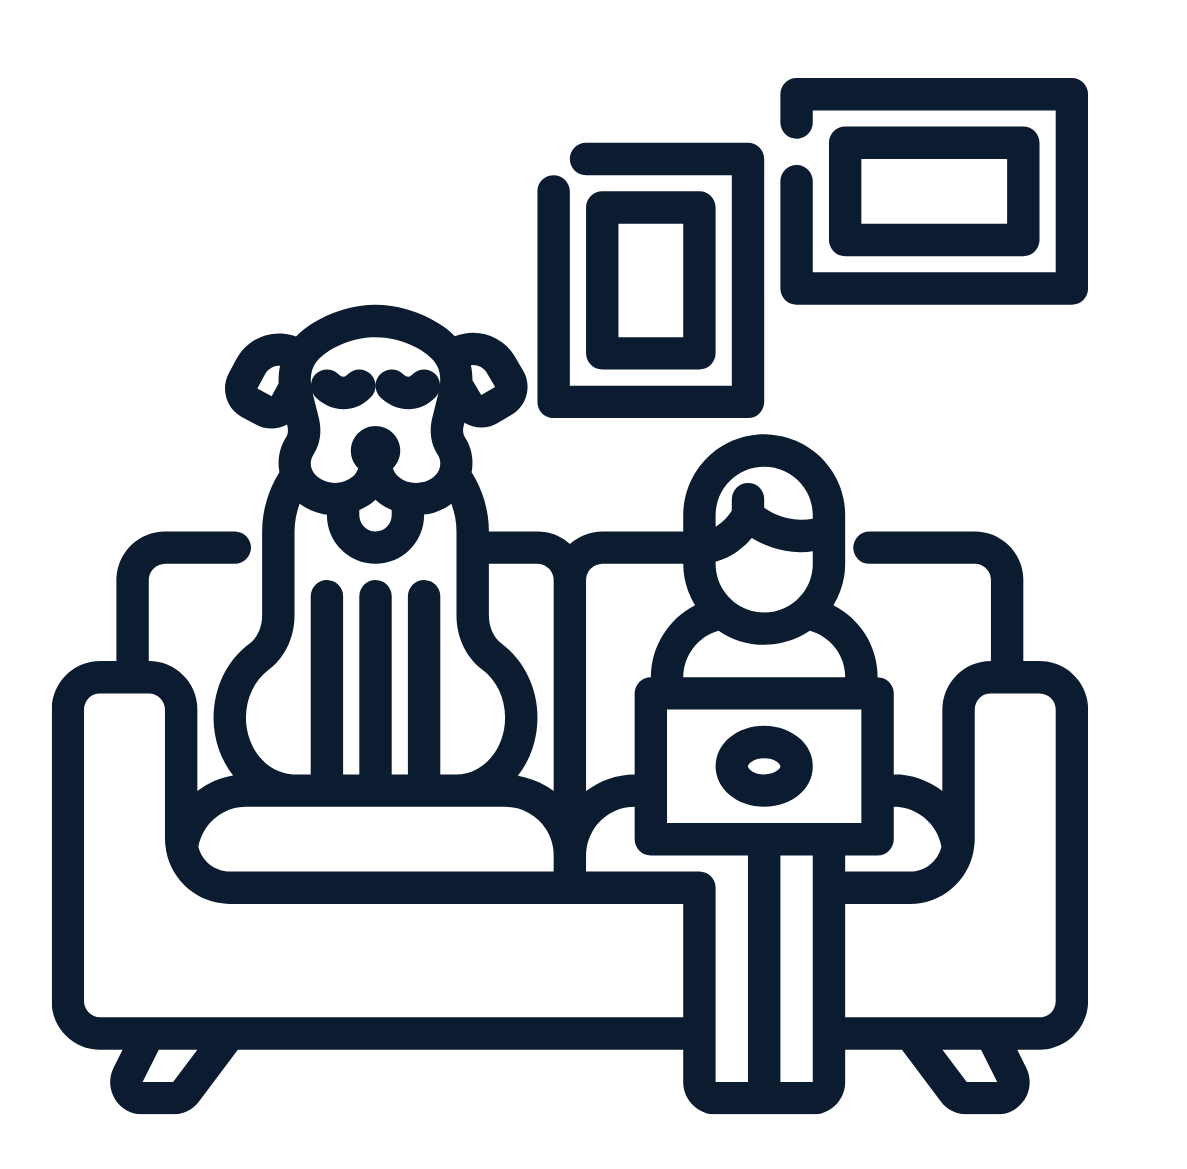 Image of person and dog sitting on a couch; person is holding a laptop